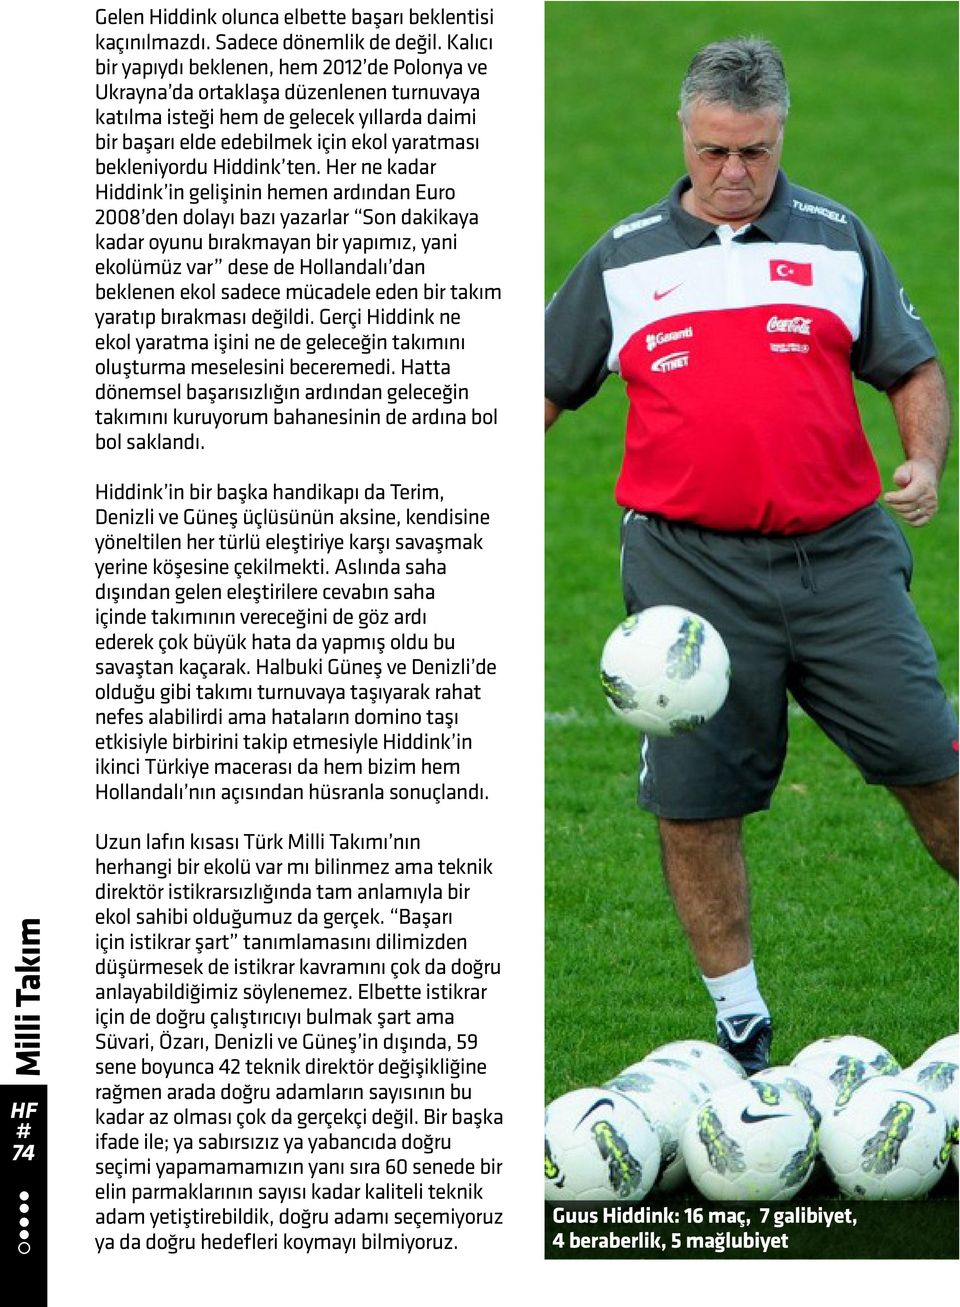 Hiddink ten.